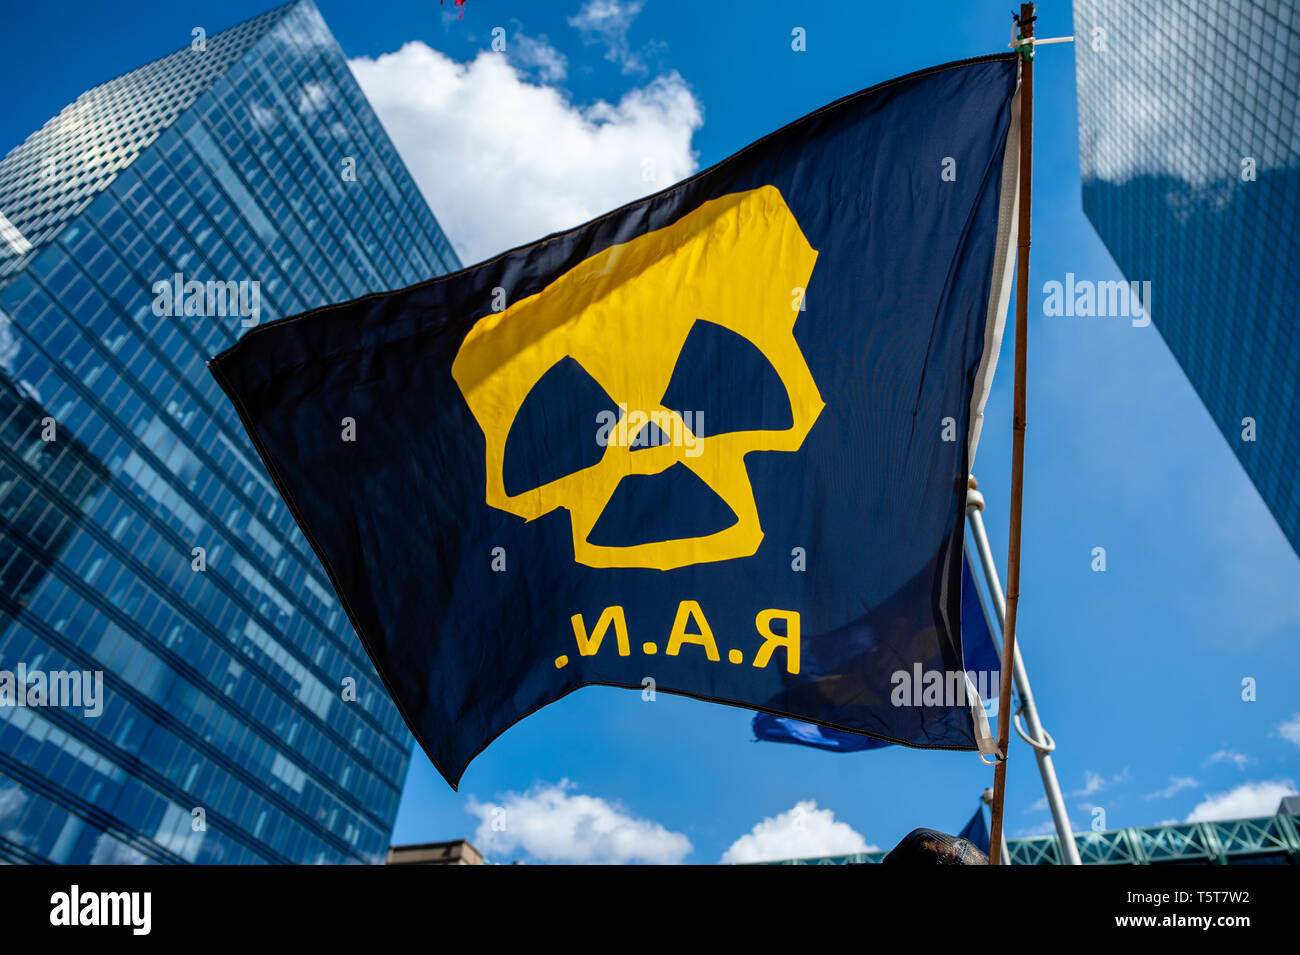 """An anti nuclear flag seen flying during the protest. On the day that commemorates the 33rd anniversary of the Chernobyl nuclear disaster, a protest was organized by the """"Fin du nucléaire"""" and Réveil Anti-Nucléaire"""" associations, as well as director Bouli Lanners. They want the five most dangerous Belgian reactors to be shut down. - Stock Image"""